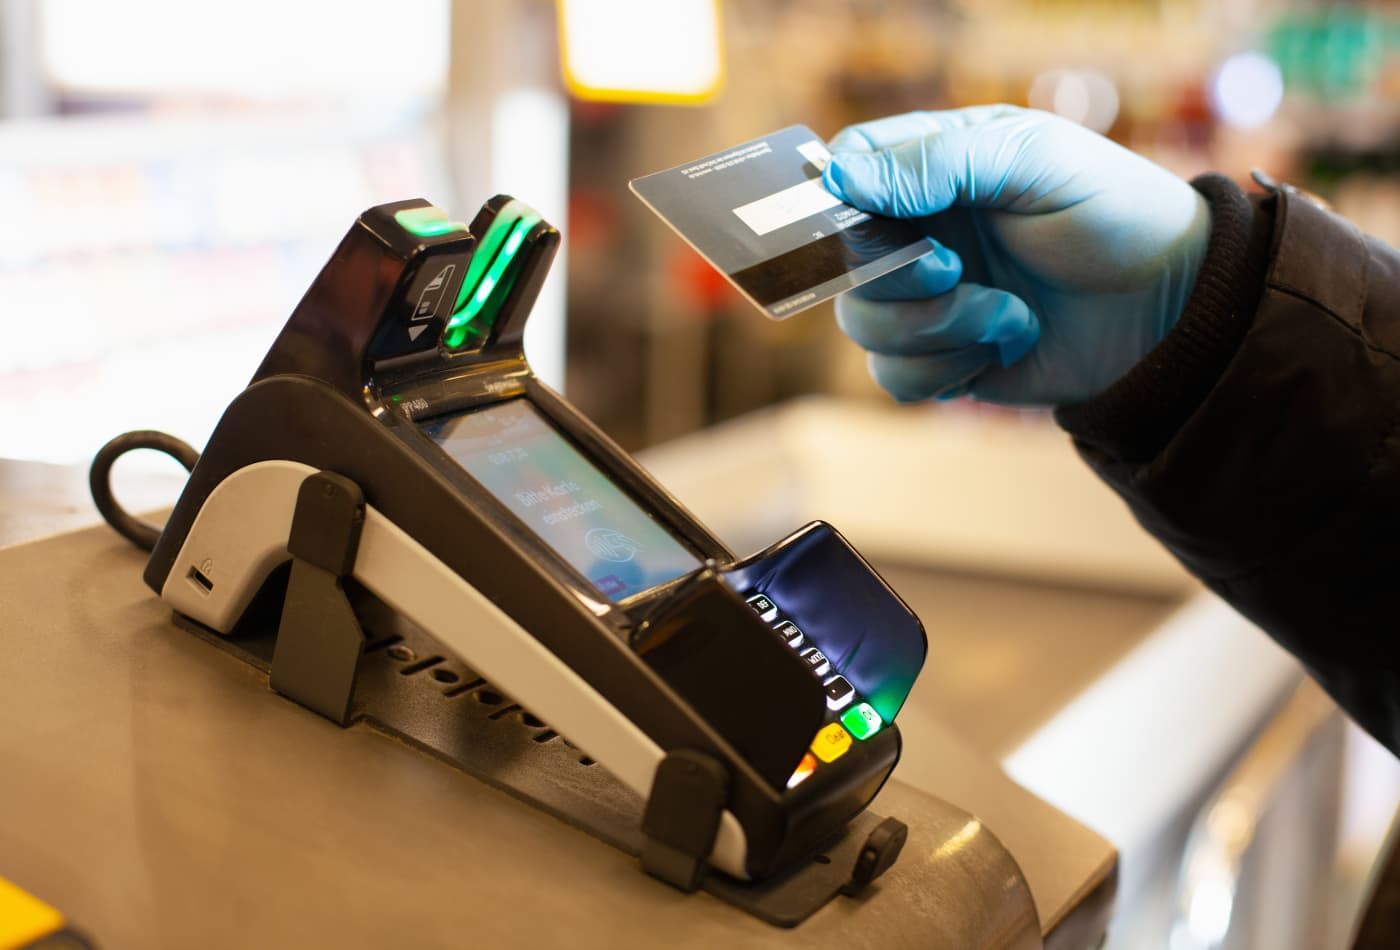 More than half of Americans now use contactless payments, according to Mastercard poll